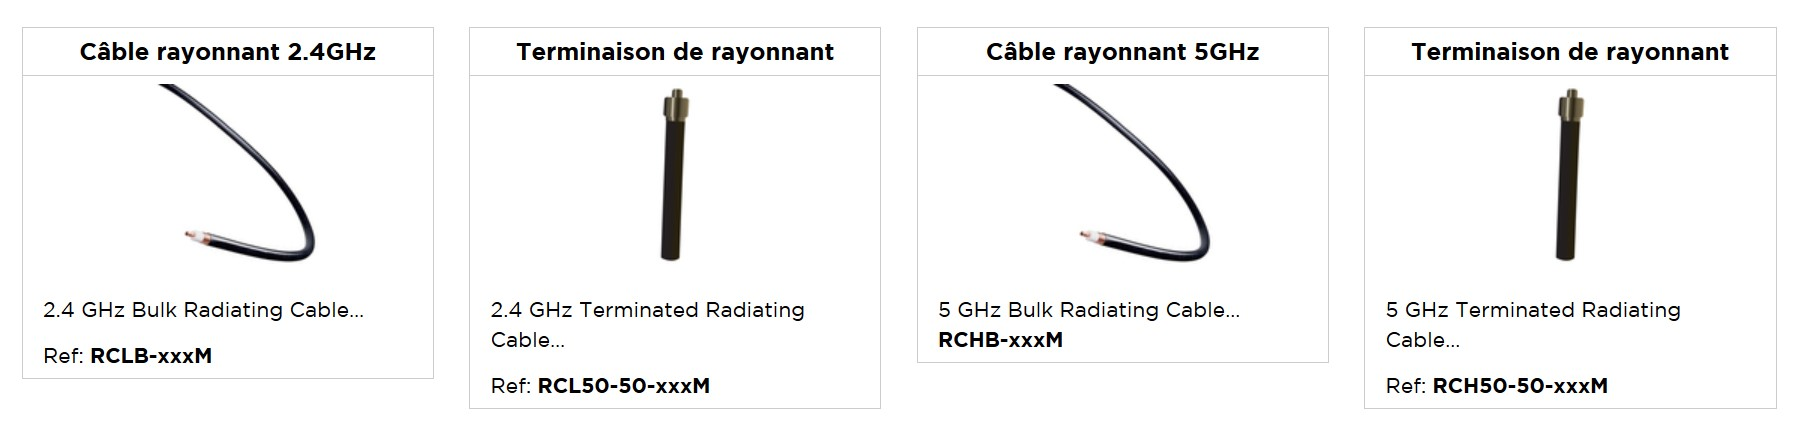 Antennes Cables rayonnants